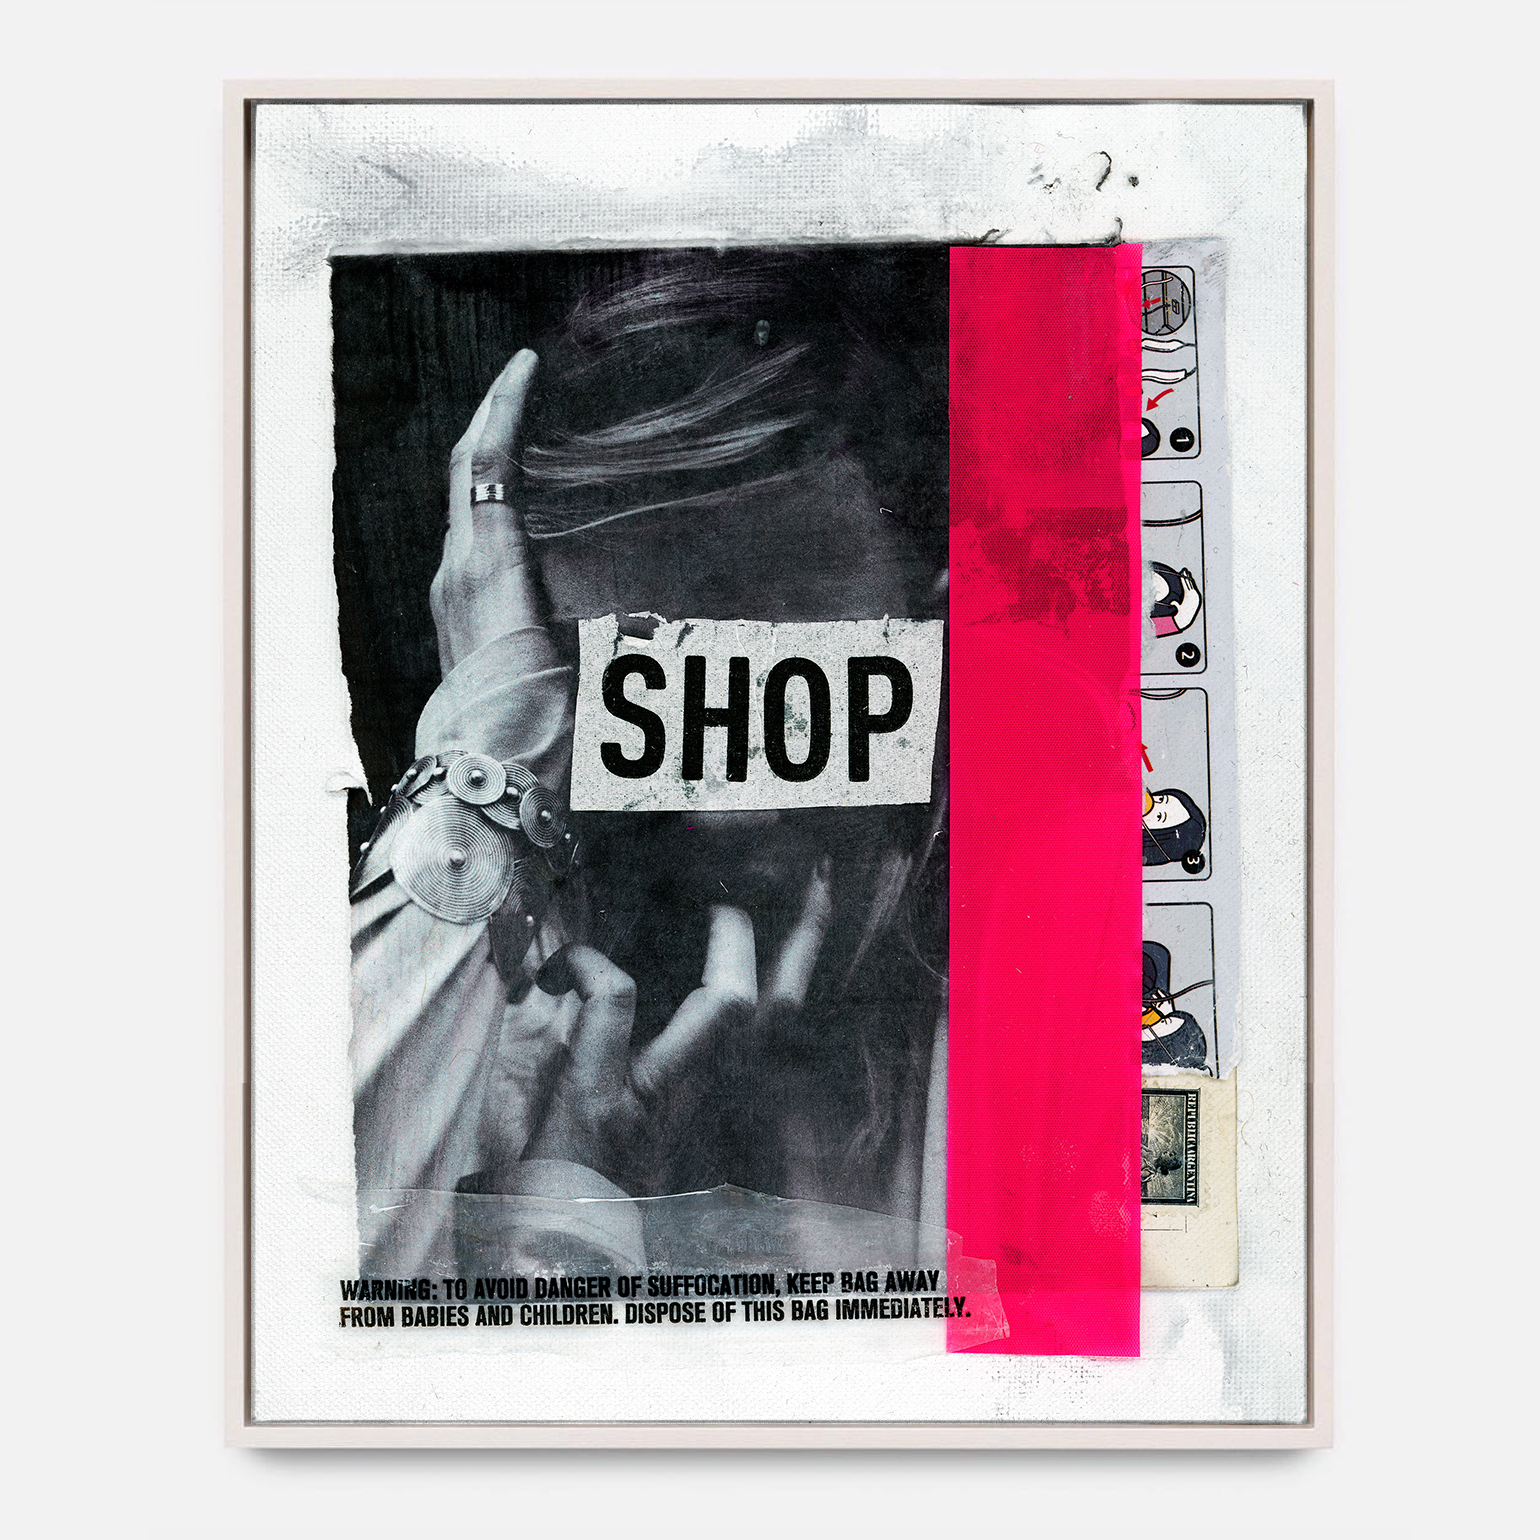 SHOP SHOP SHOP  (2018) Mixed Media on Wood Panel 48 x 72 inches One of a Kind $ 2,000.00